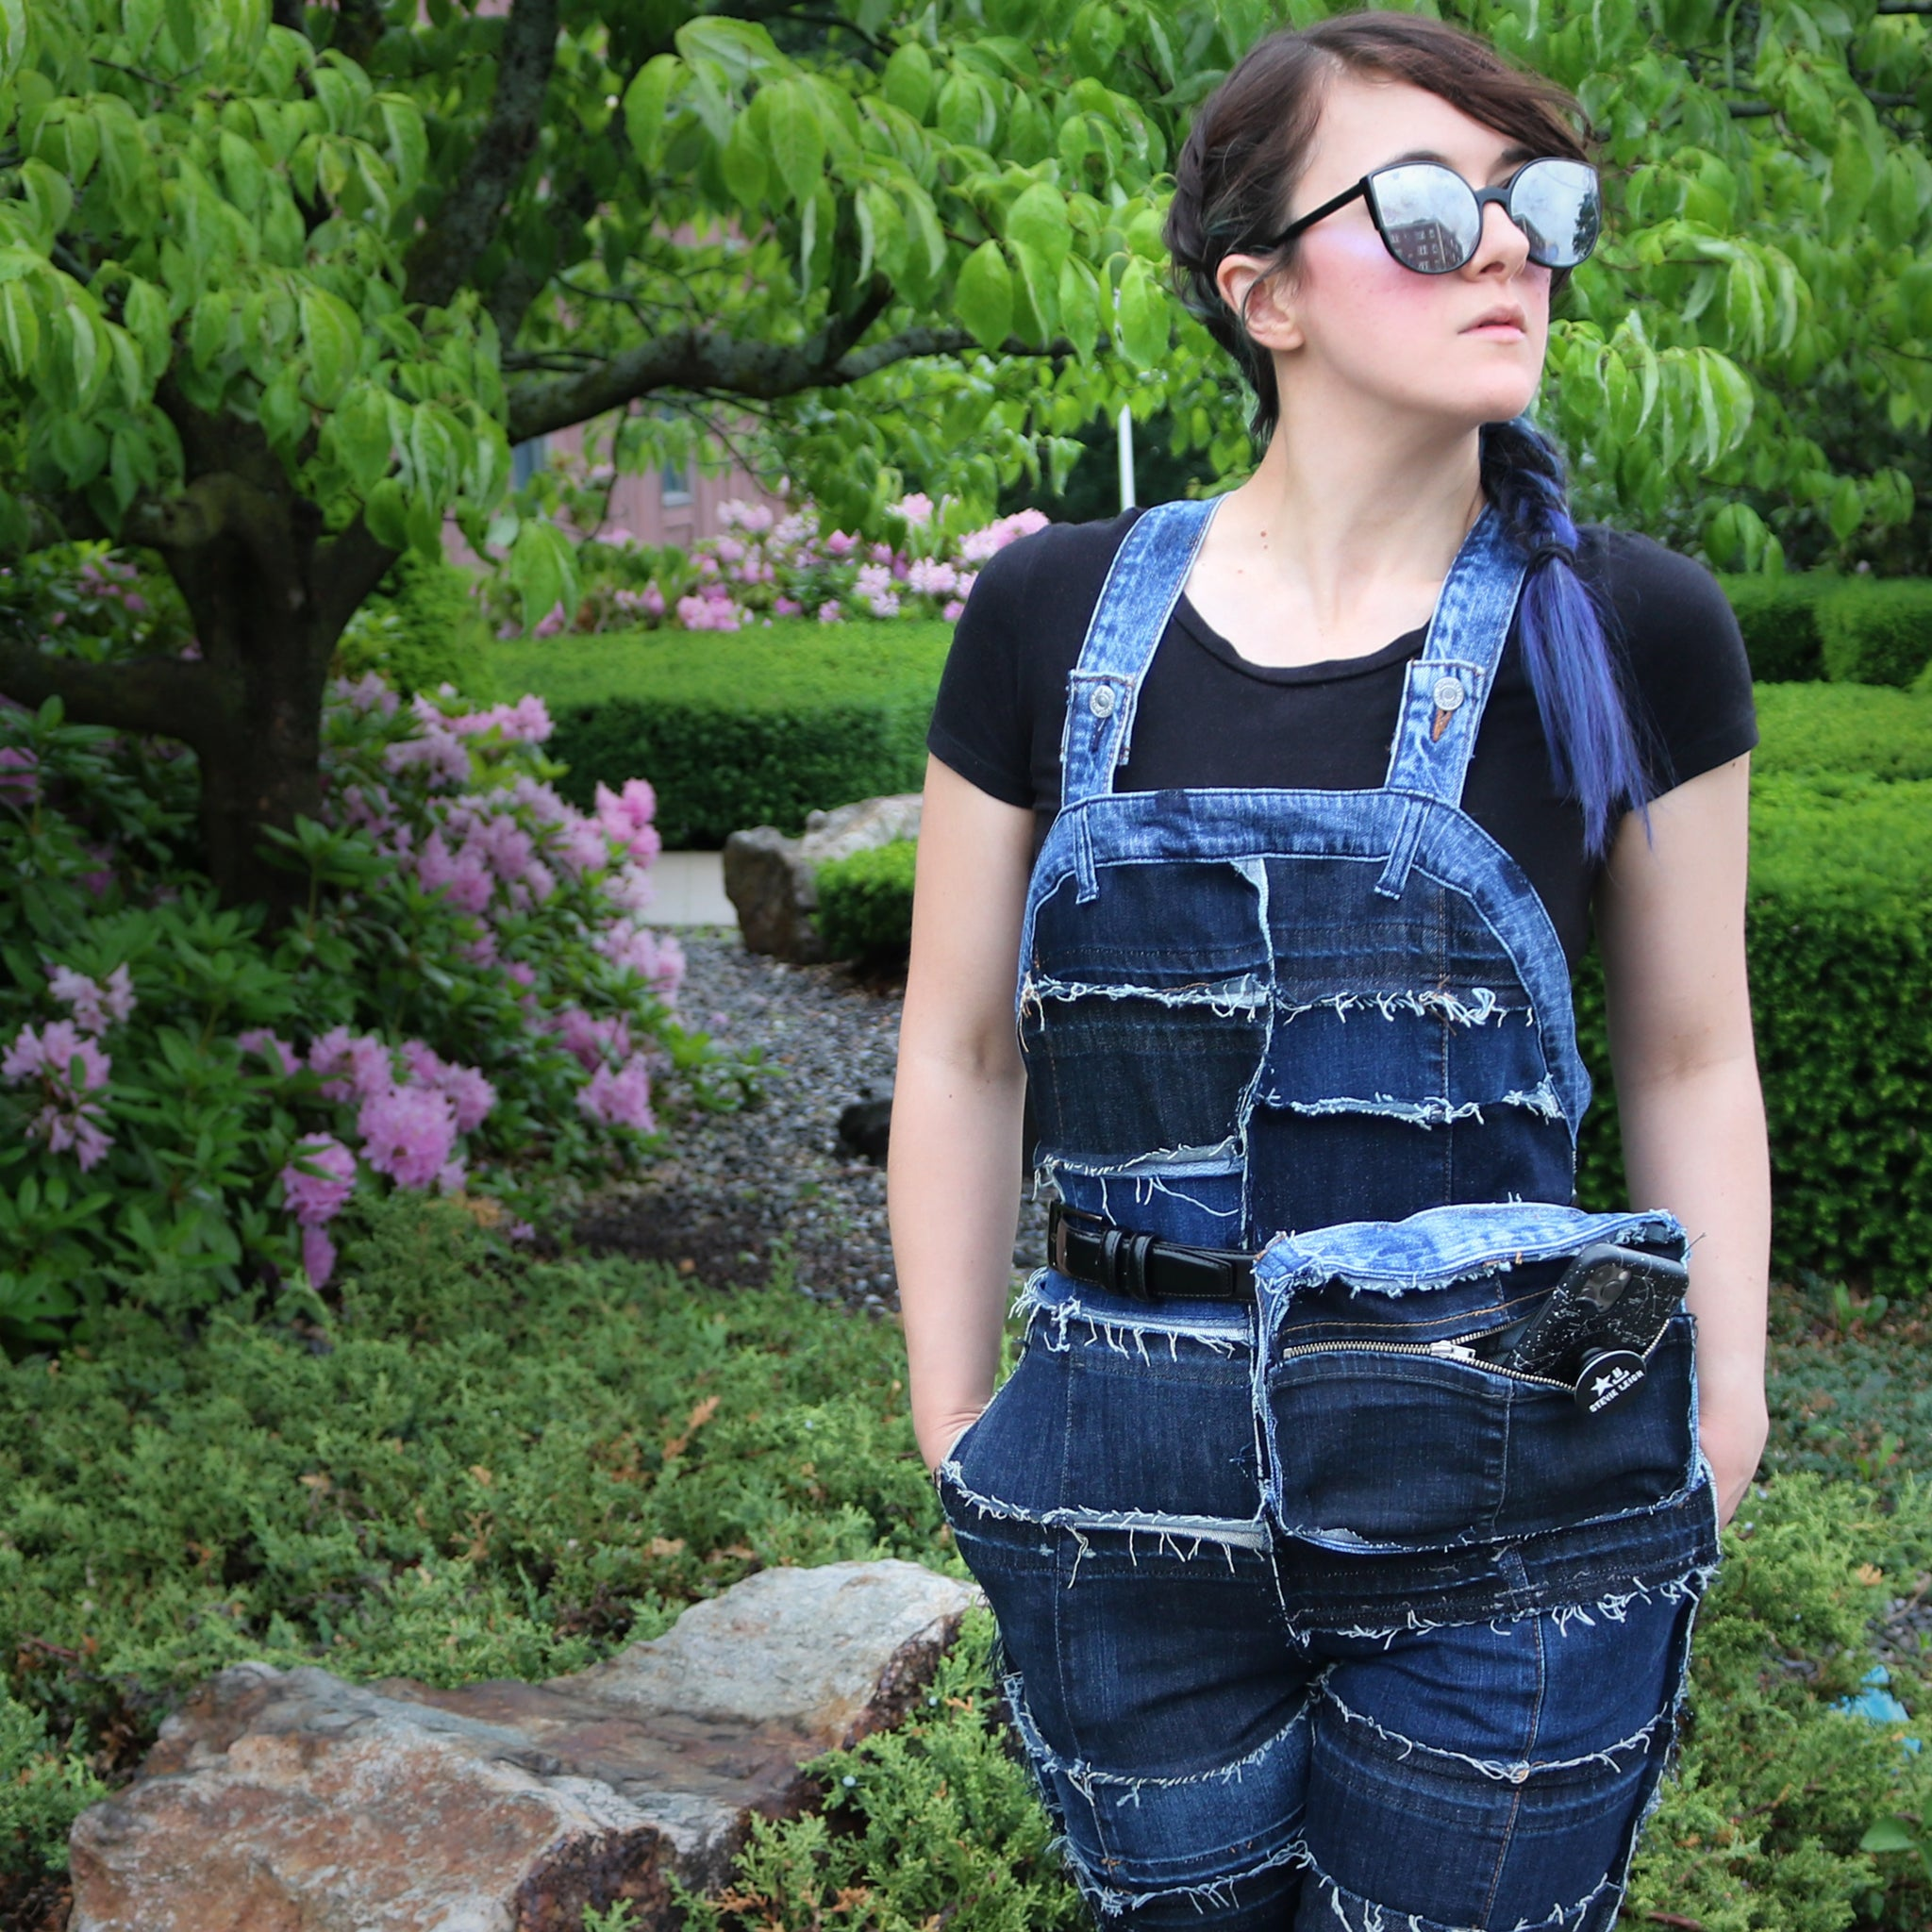 FRESHLY REMIXED: New upcycled denim designs just added to our site!